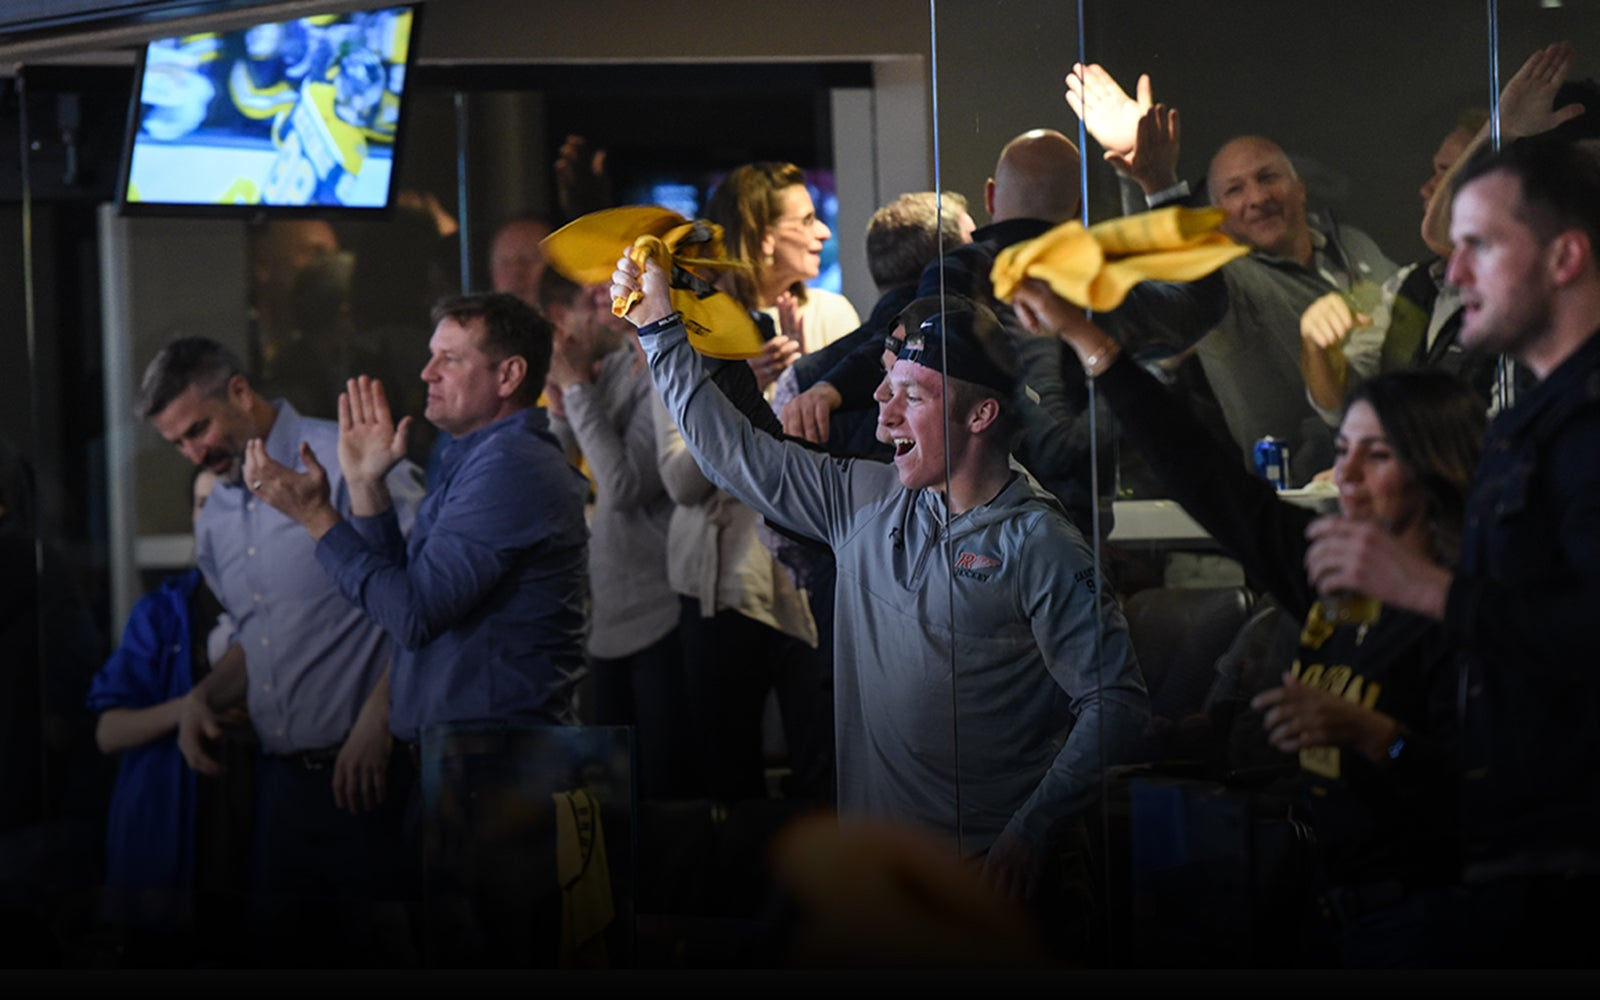 Image of Bruins fans in Society Suites